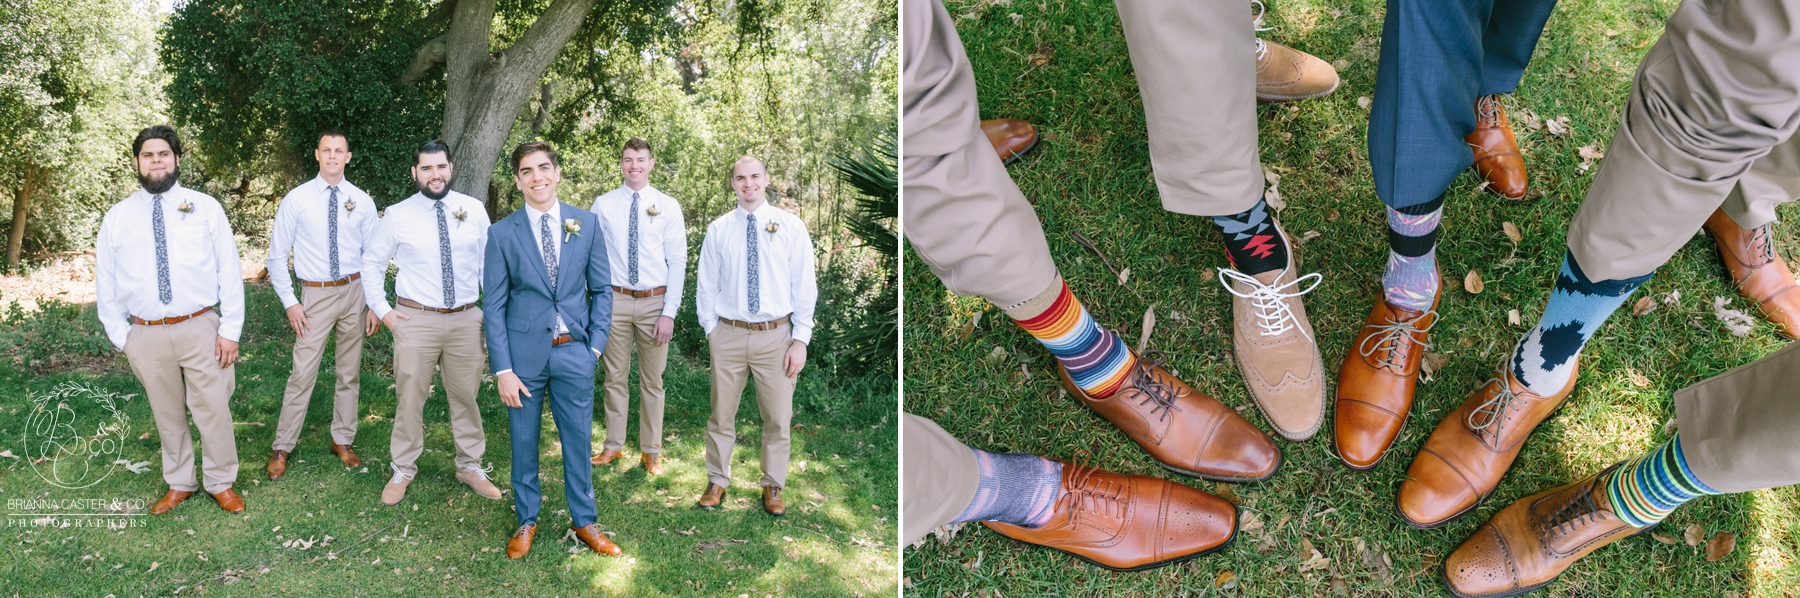 Cross-Creek-Country-Club-Wedding-Brianna-Caster-and-Co-Photographers-10